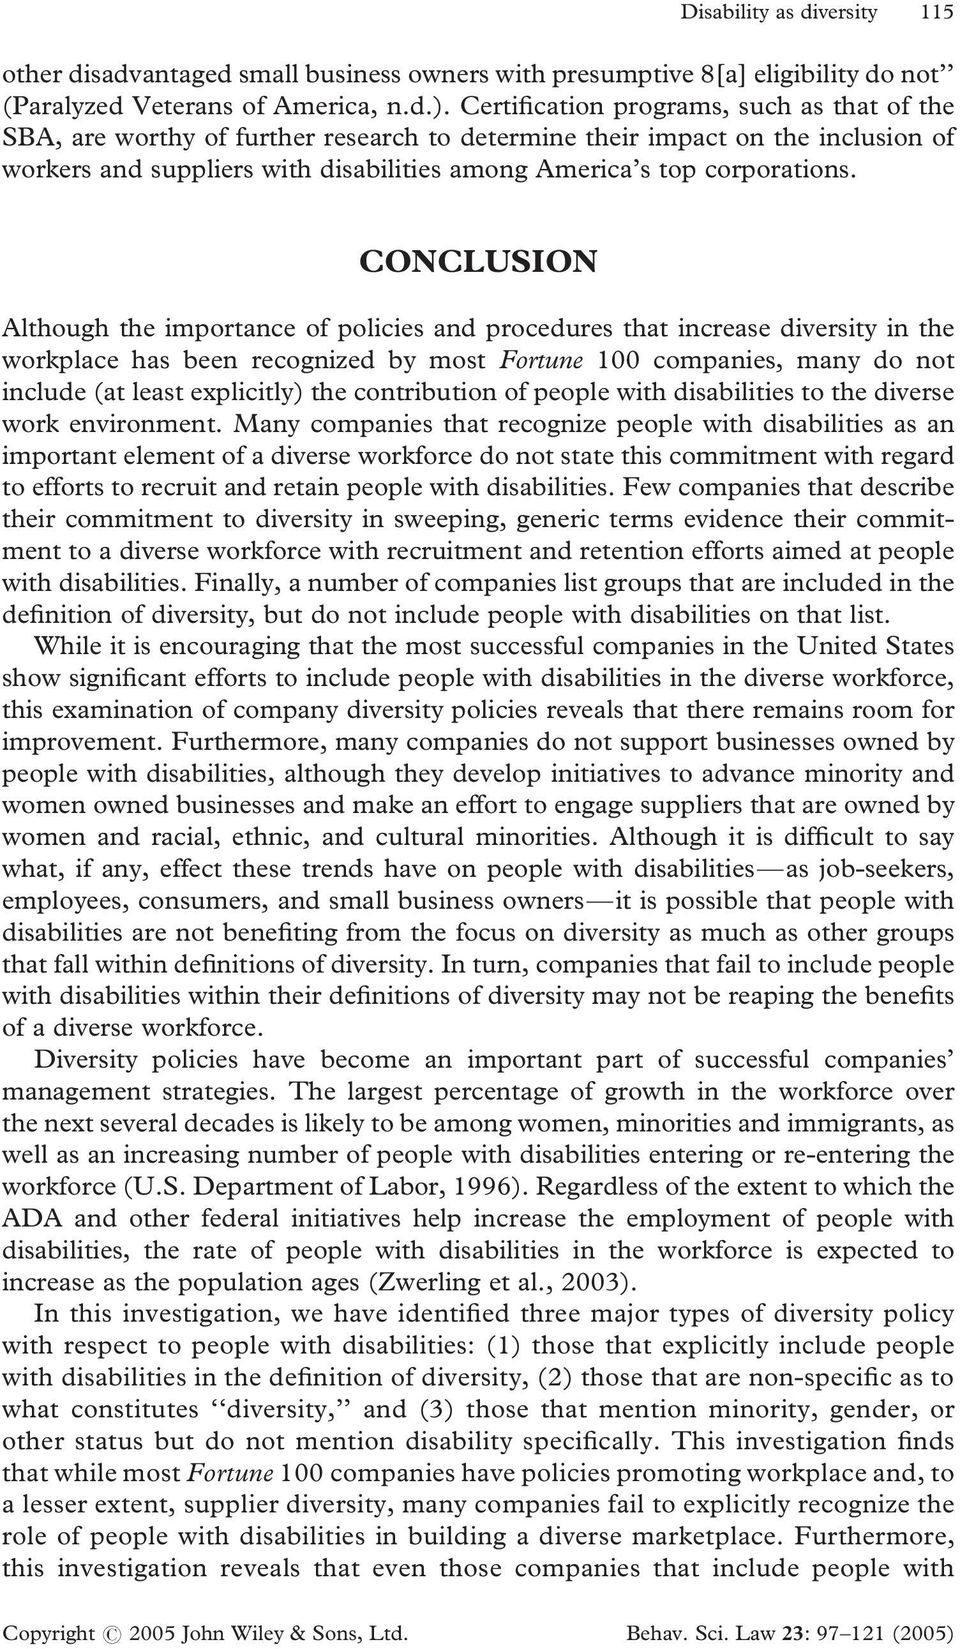 CONCLUSION Although the importance of policies and procedures that increase diversity in the workplace has been recognized by most Fortune 100 companies, many do not include (at least explicitly) the